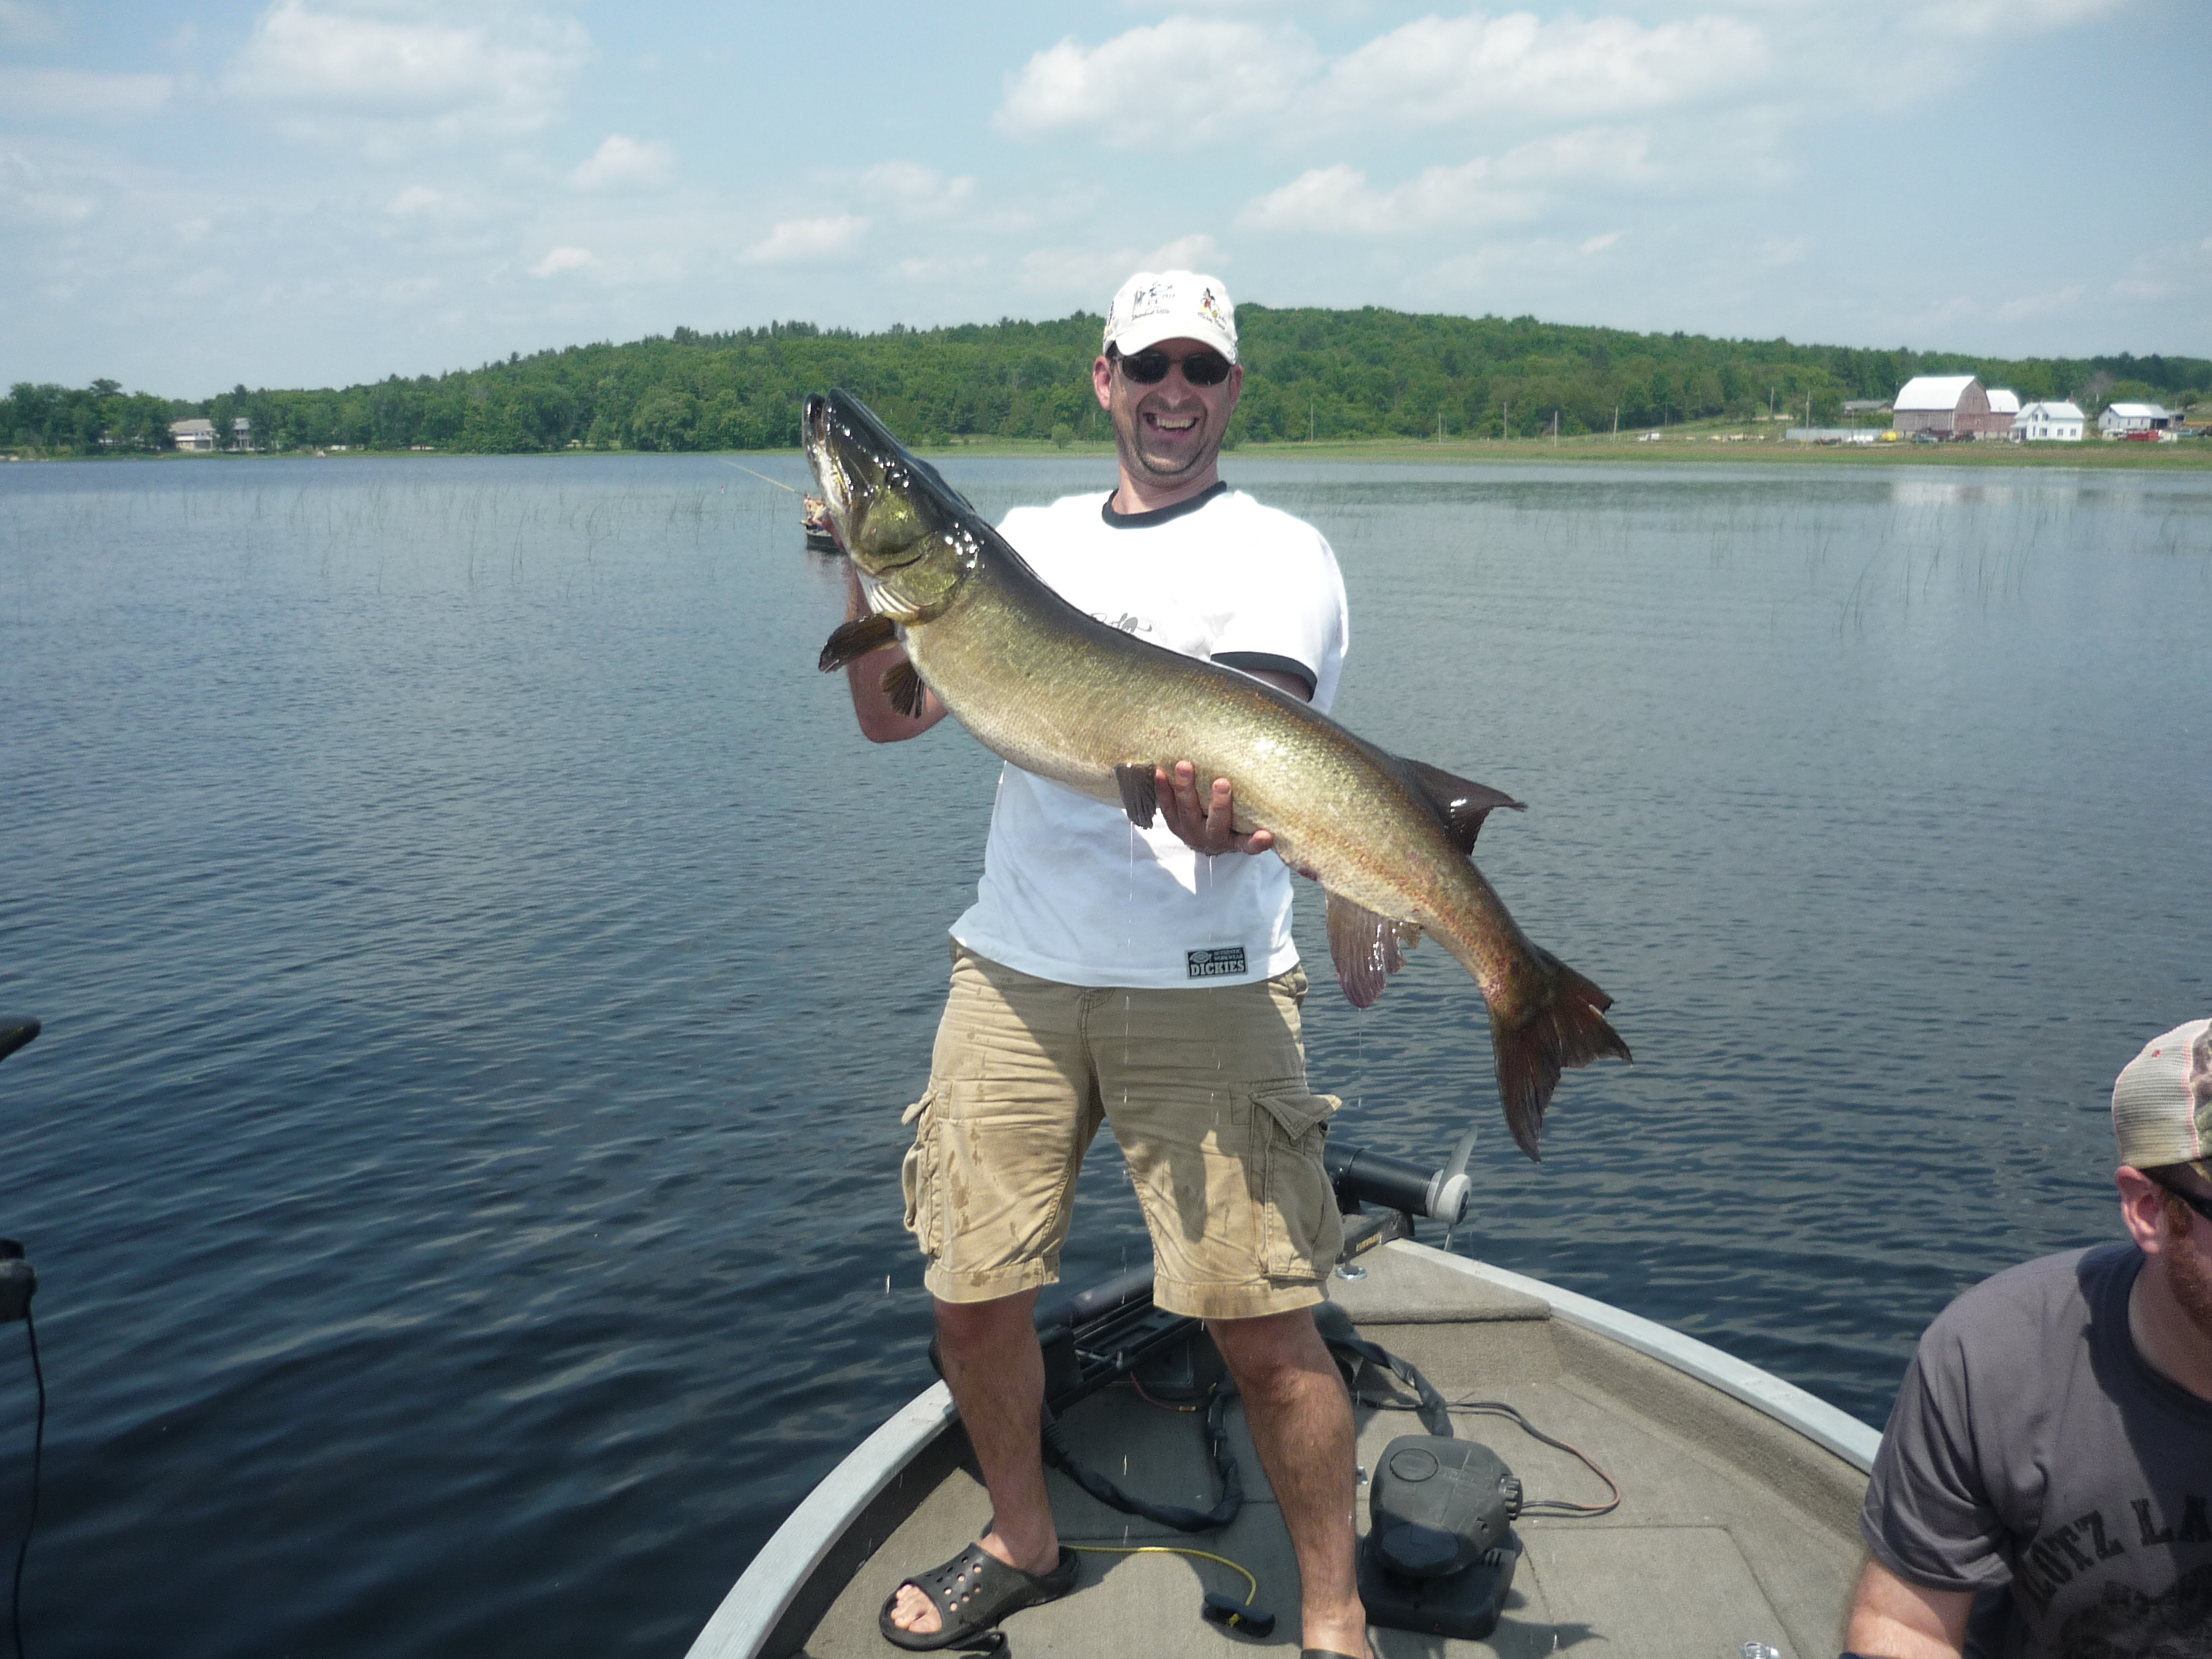 Rick Brummell Plainfield Ontario  I went muskie fishing with 5 friends and caught this beautiful